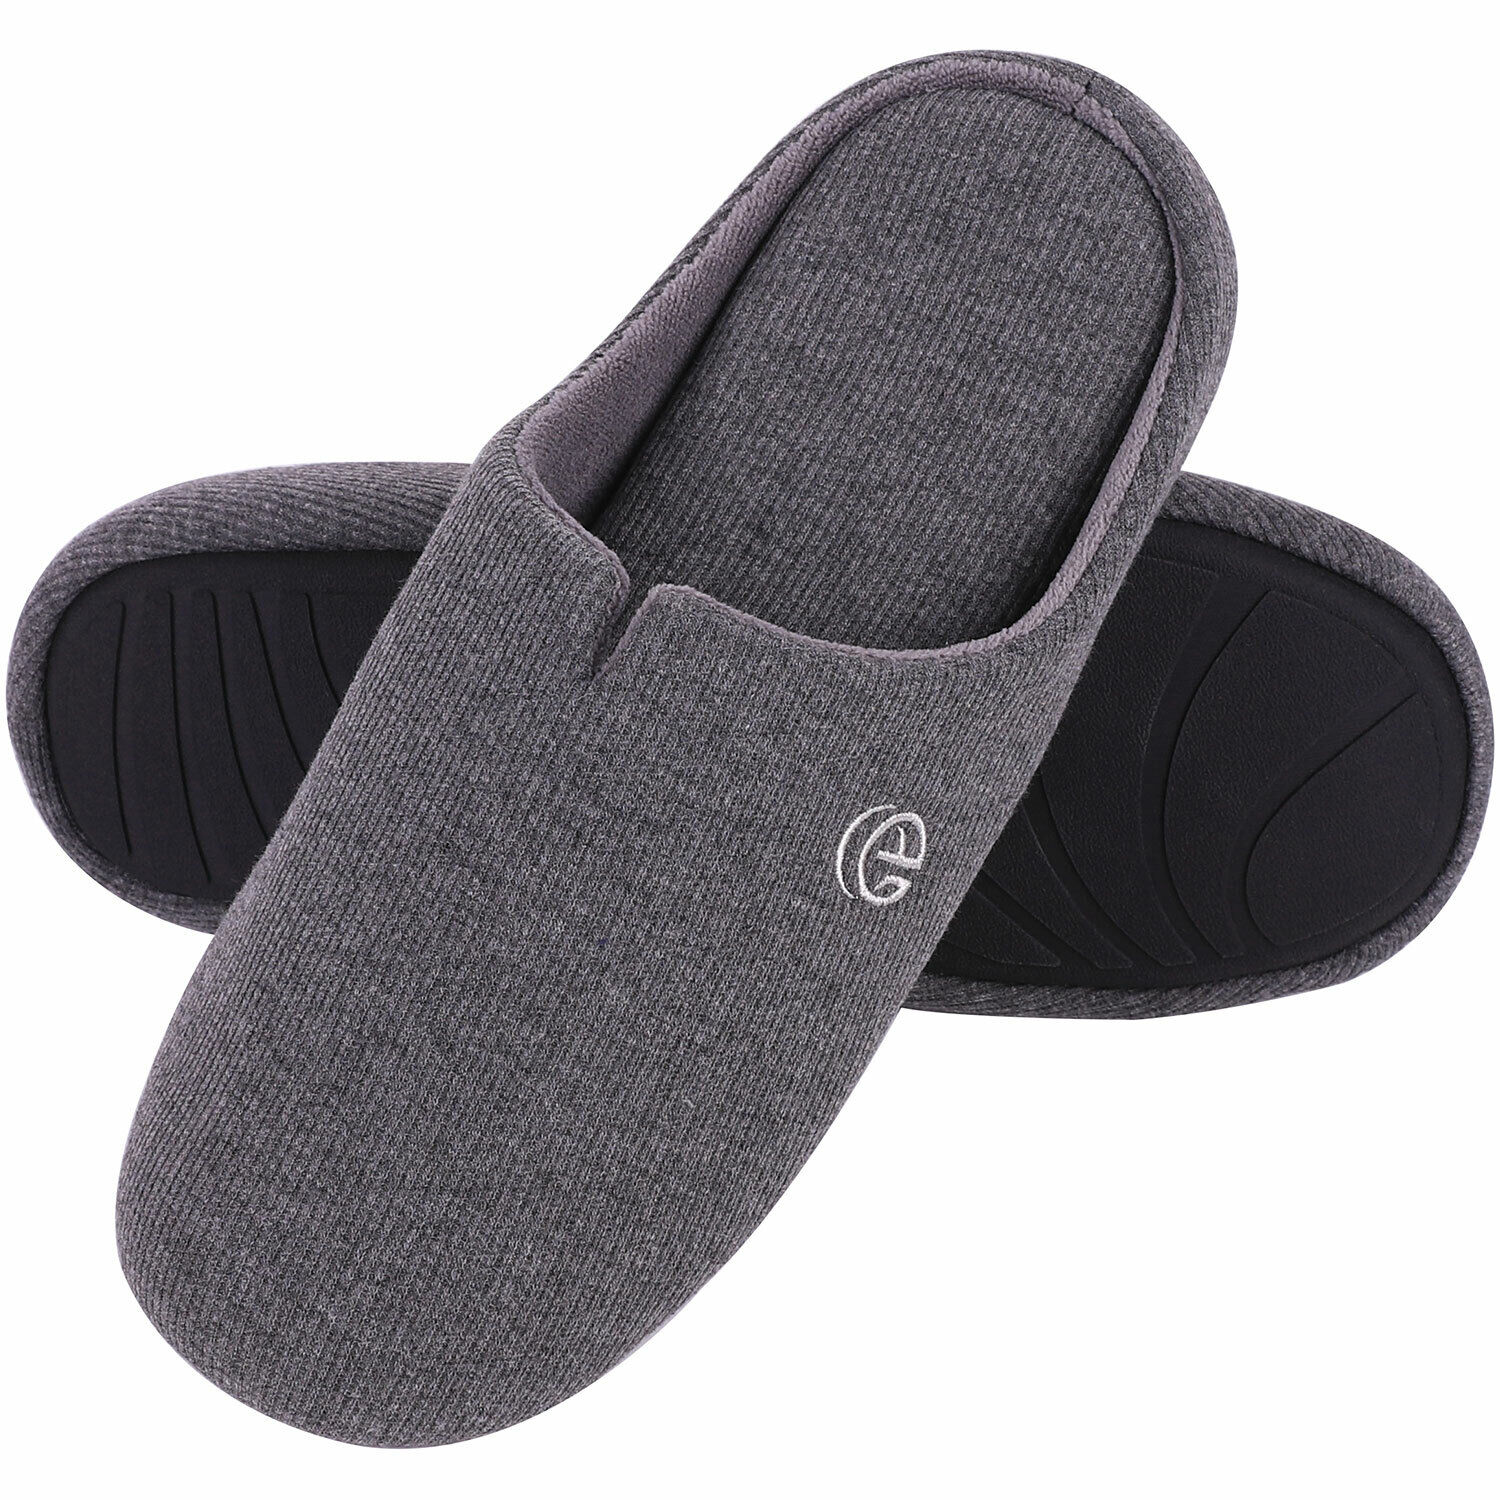 Men's Comfort Cotton Knit Memory Foam Slippers Light Weight House Shoes